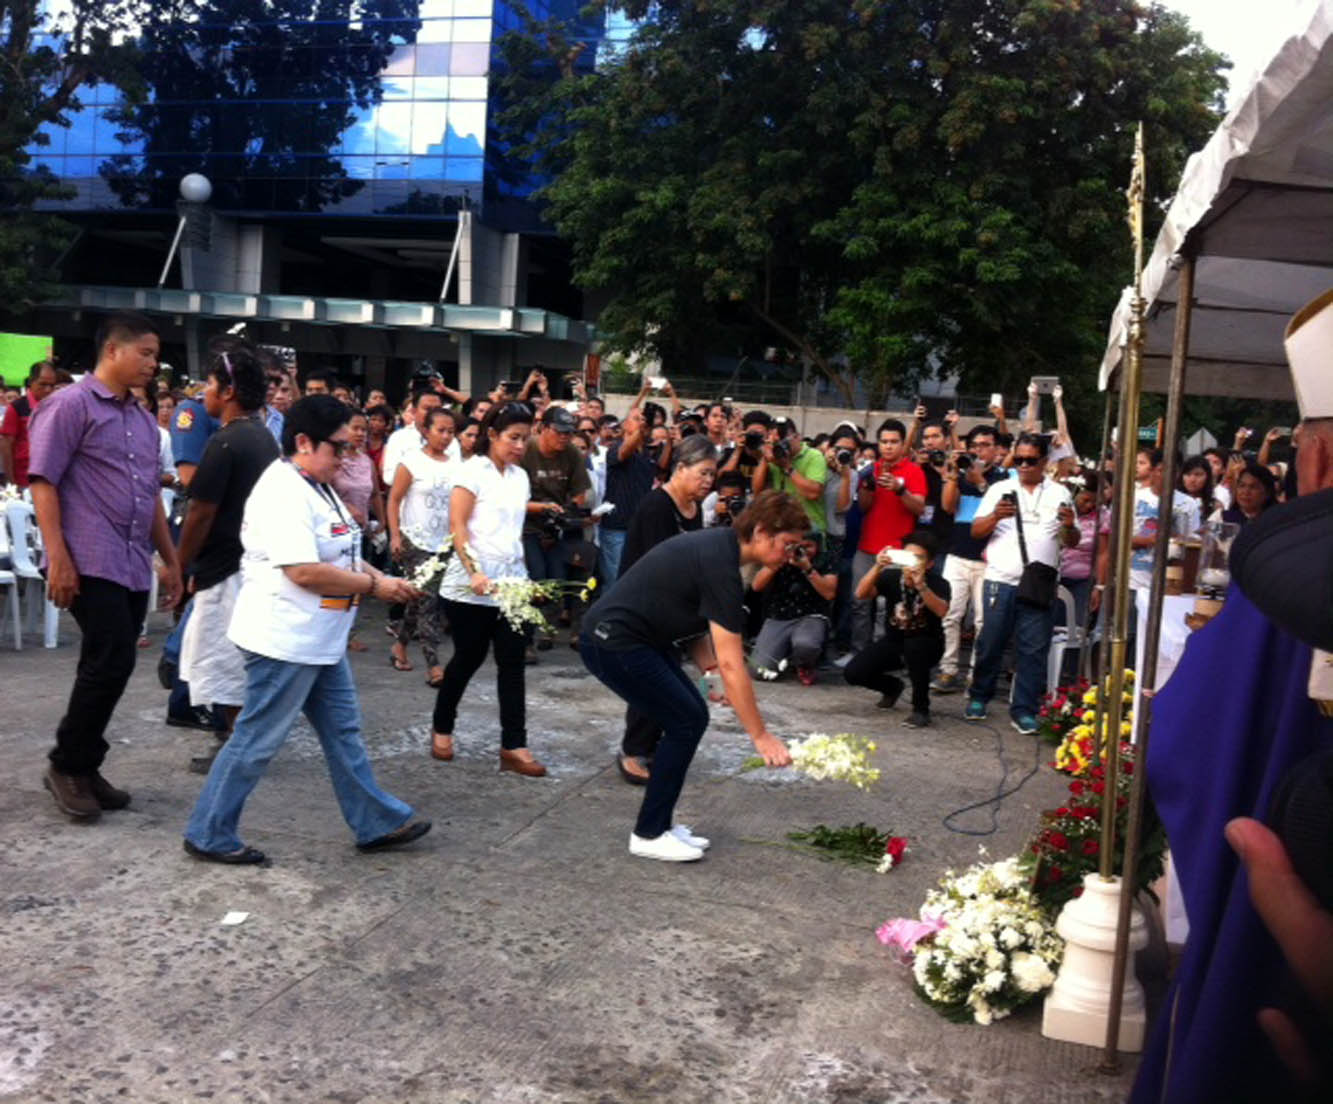 DAVAO CITY, Sept. 3-Davao City Mayor Inday Sara Duterte (black shirt) leads the offering of flowers during Saturday afternoon mass offered to the victims of the explosion at the Roxas night market on Friday night.(Photo: Lilian Mellejor/PNA)